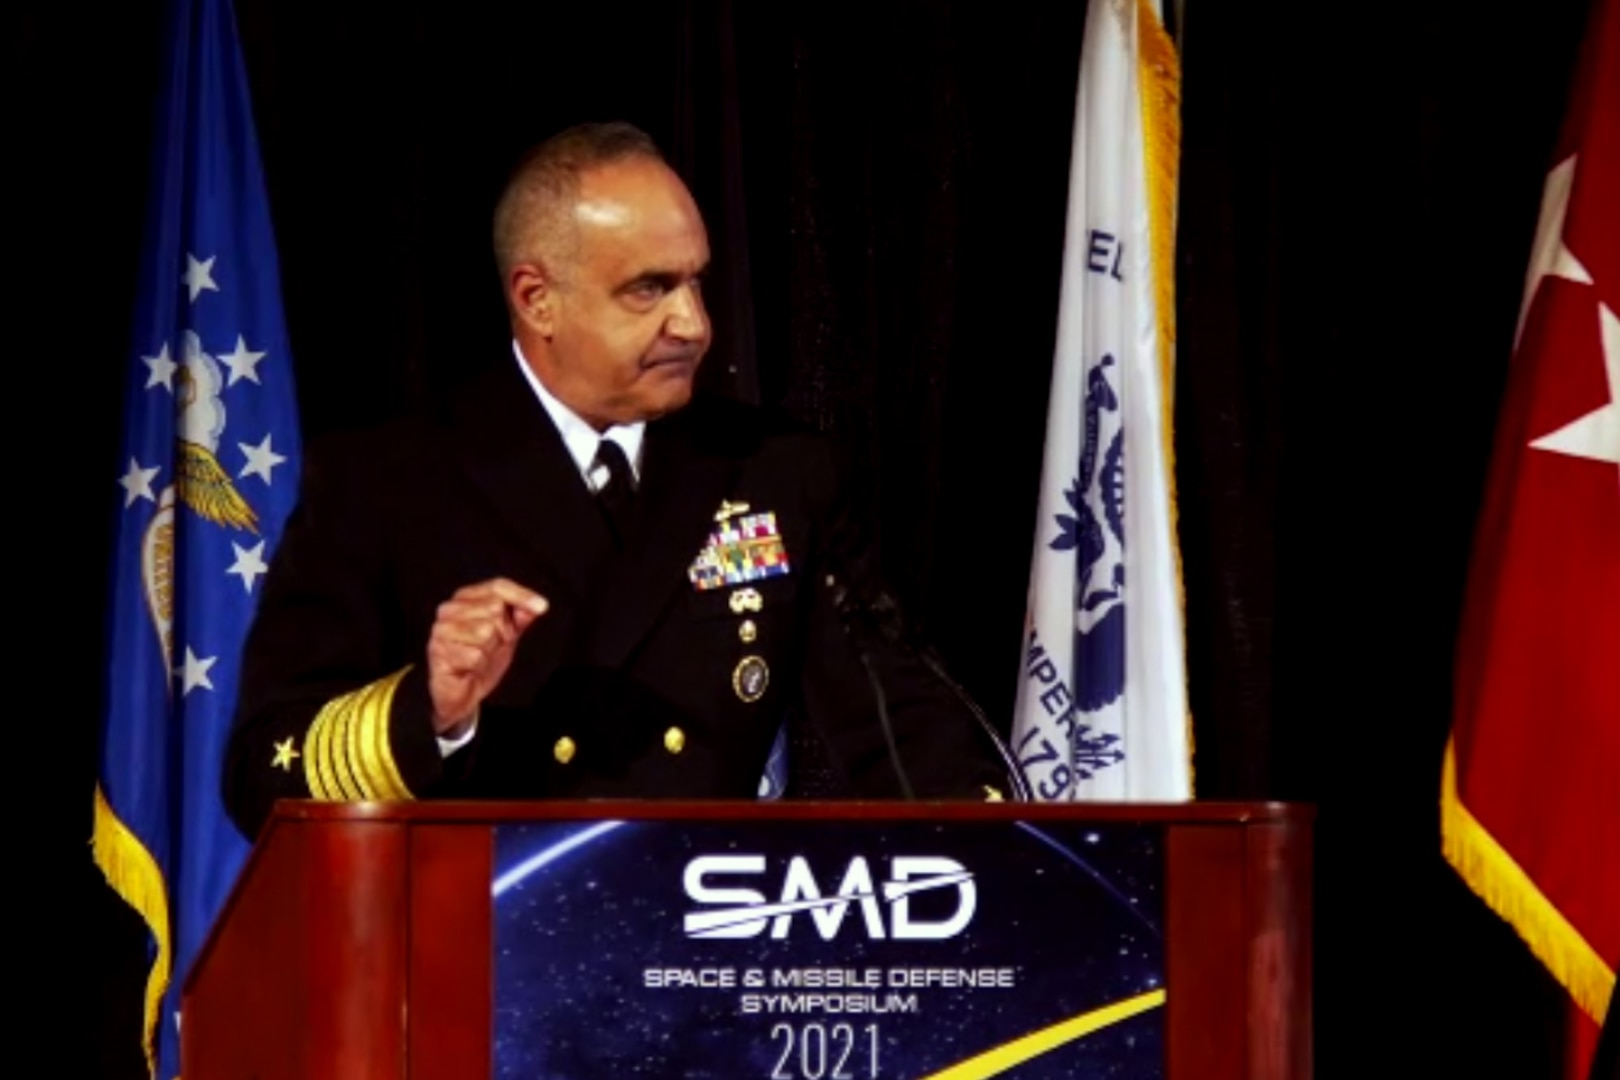 China, Russia Pose Strategic Challenges for U.S., Allies, Admiral Says